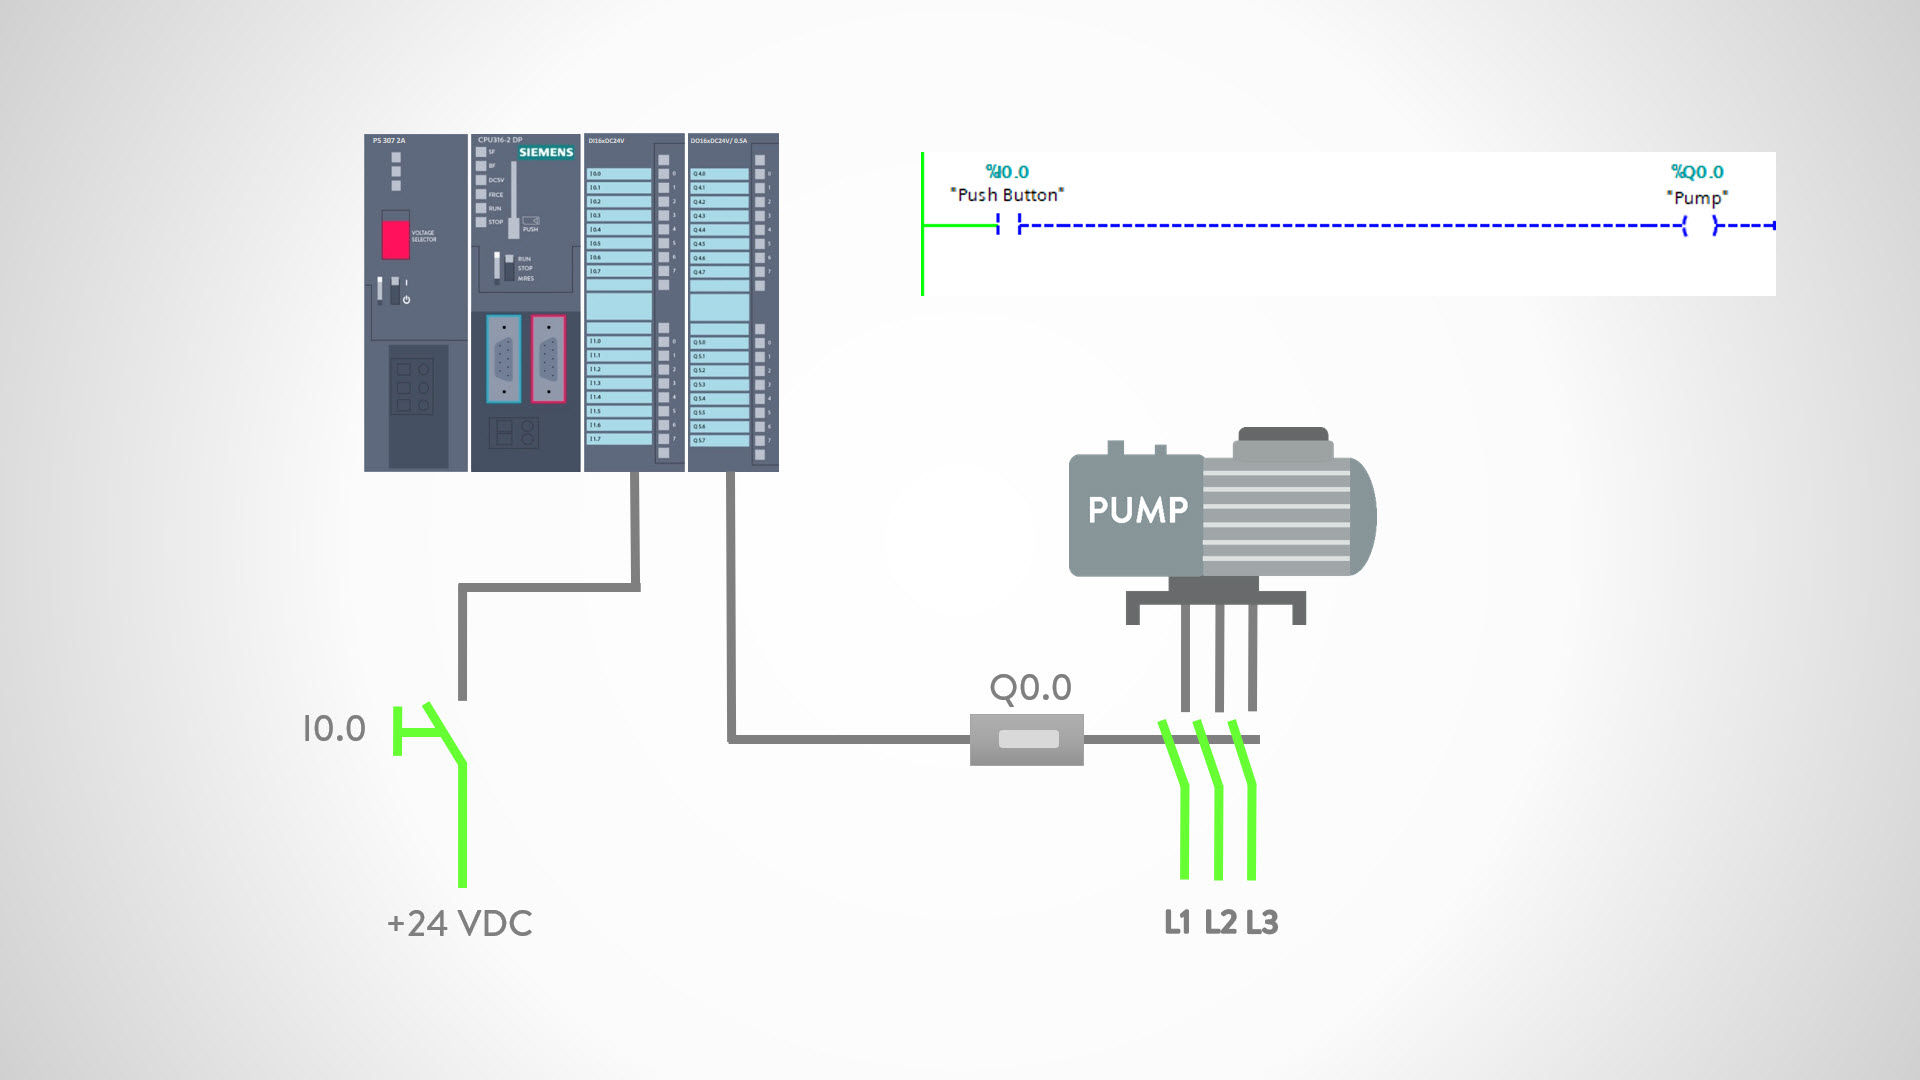 hight resolution of  and the logic program is written to sense the state of the pushbutton when the pushbutton is not pressed the logic does not turn the pump on